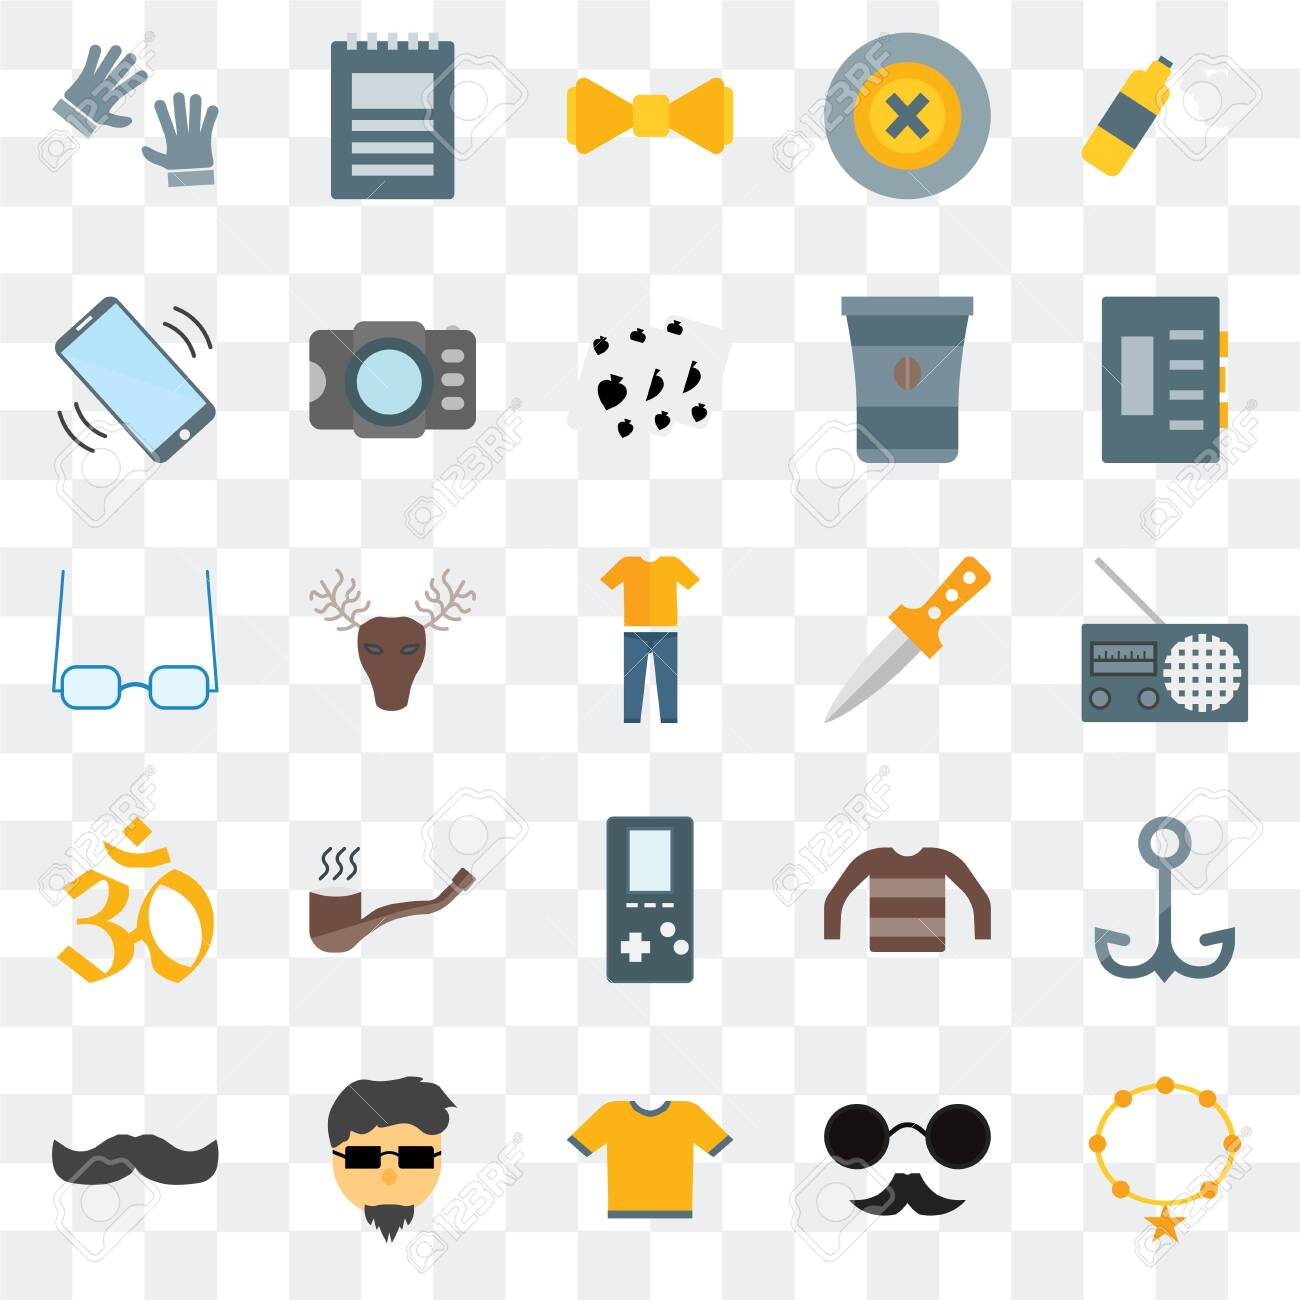 Set Of 25 transparent icons such as Accessory, Hipster, Shirt, Mustache, Dagger, Indian, Phone call, Bow tie, Notepad, web UI transparency icon pack - 130332571